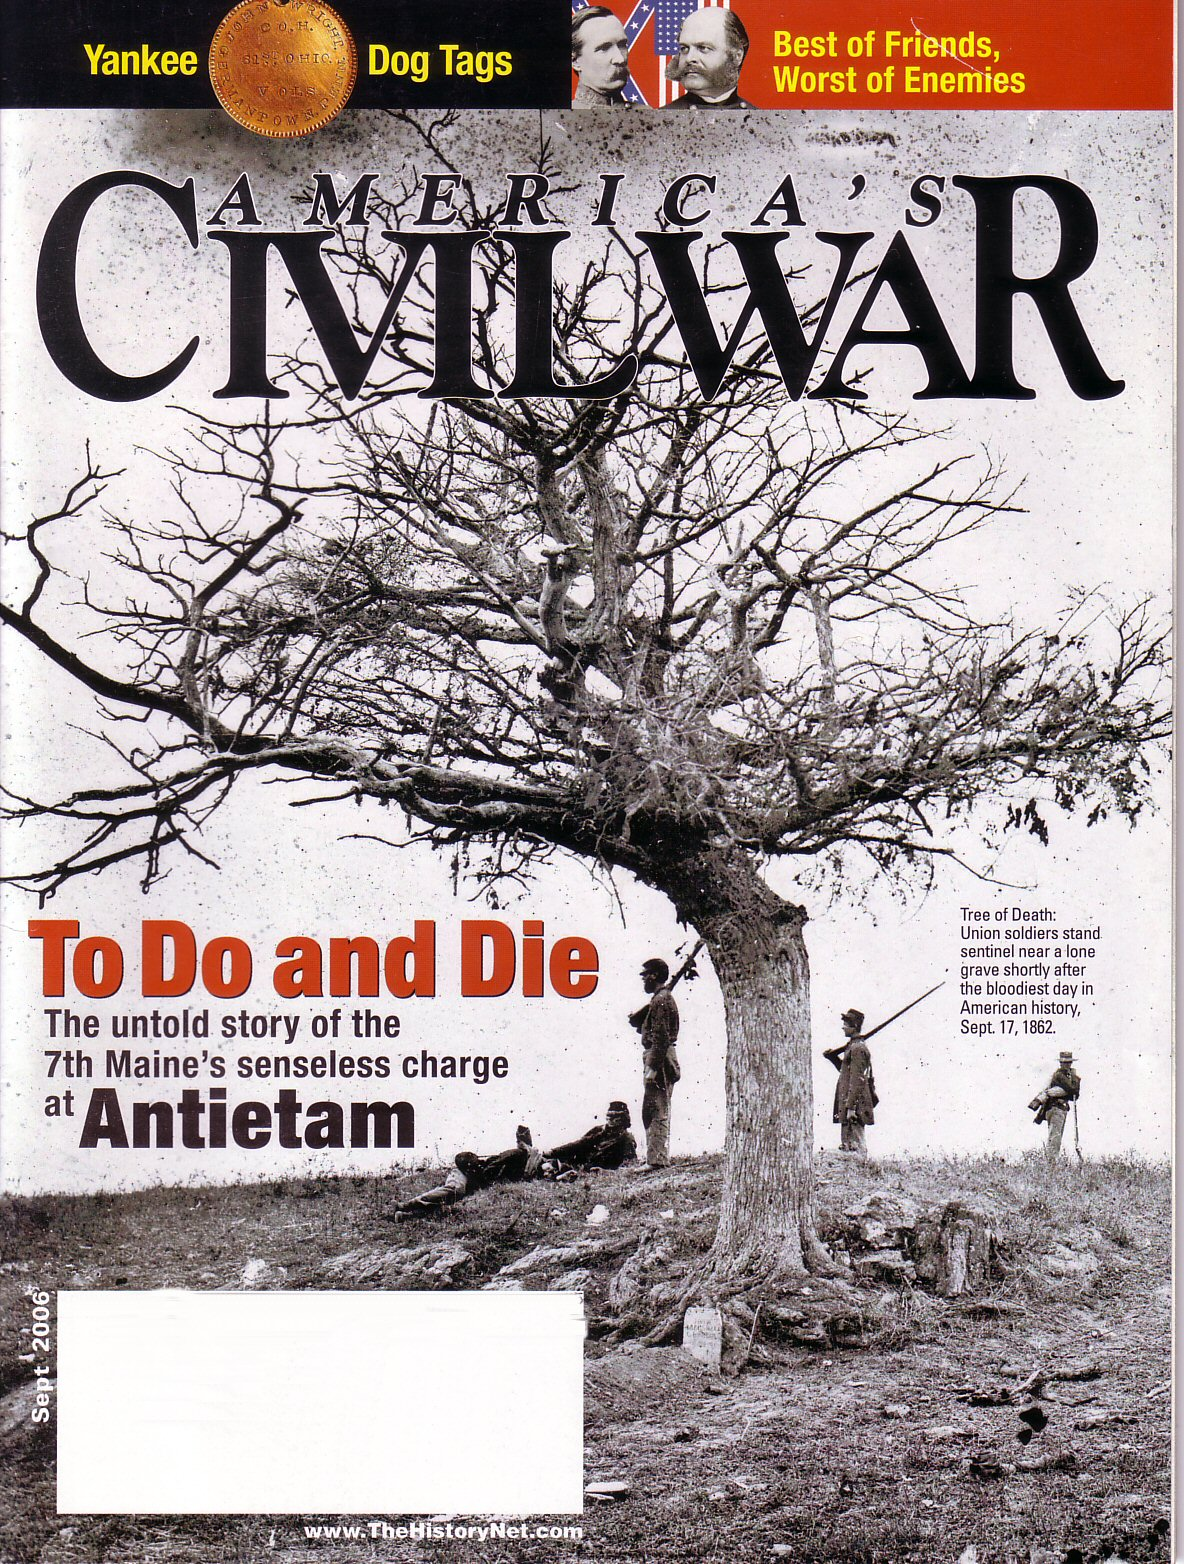 Americas Civil War, Volume 19, Number 4 (September 2006)